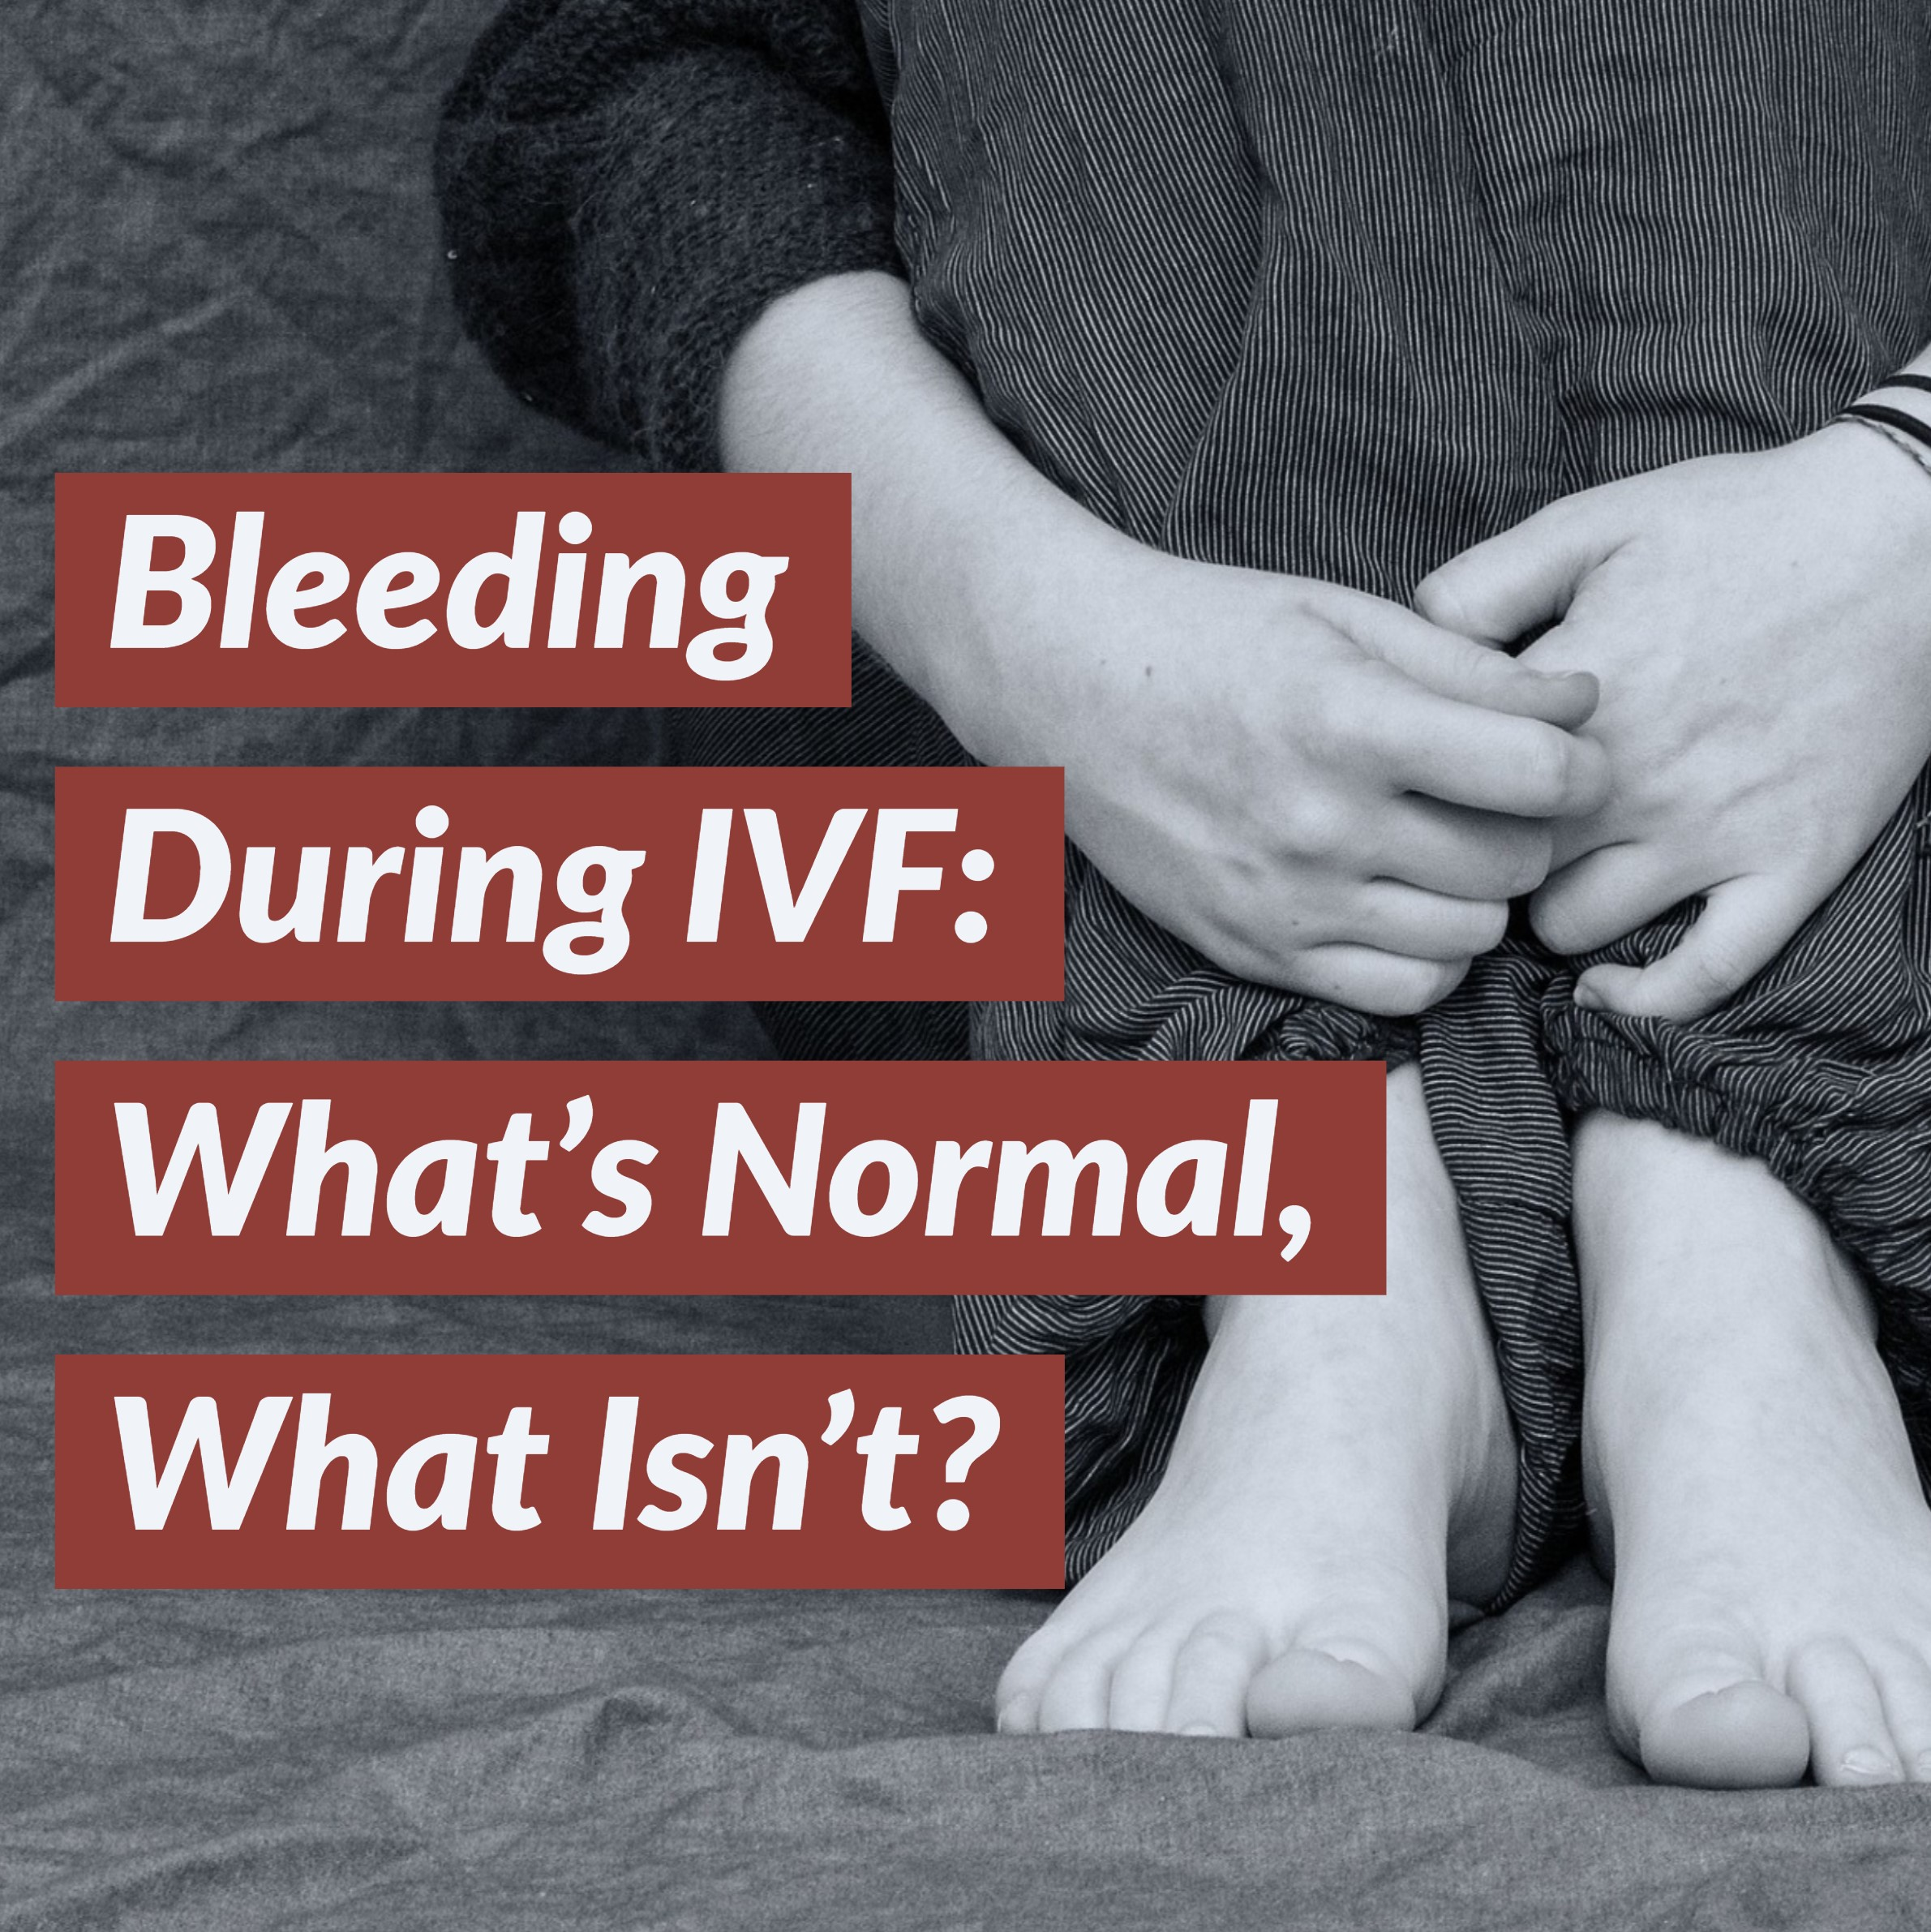 Bleeding During IVF - What's Normal and What Isn't?